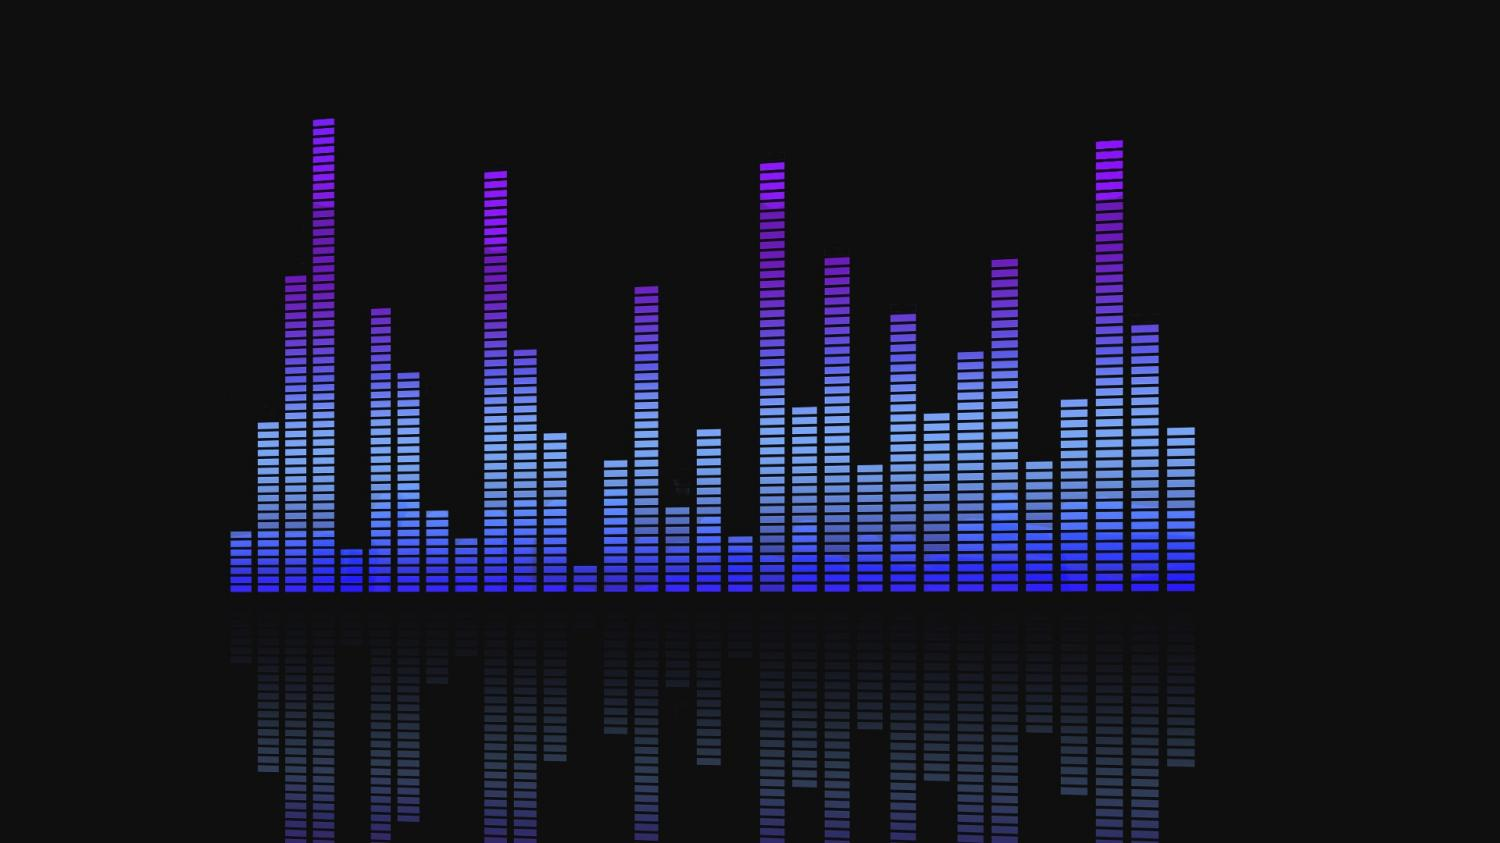 Colorful musical bars on a black background